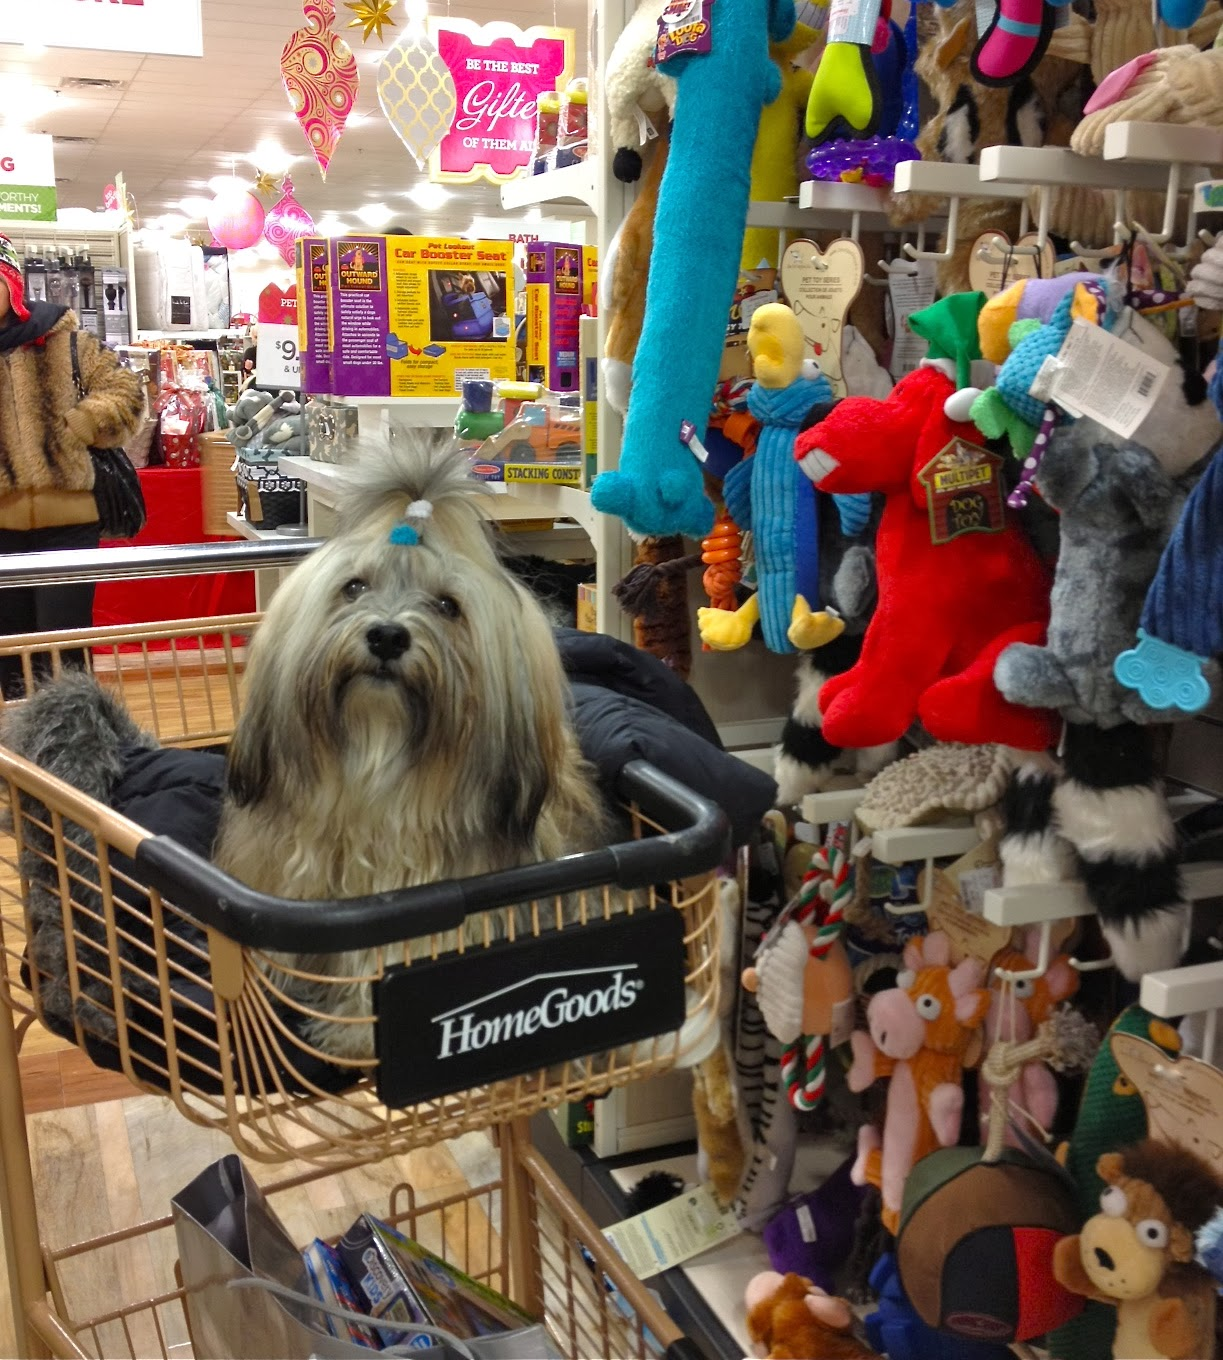 To Dog With Love: Dog-Friendly Shopping At Home Goods